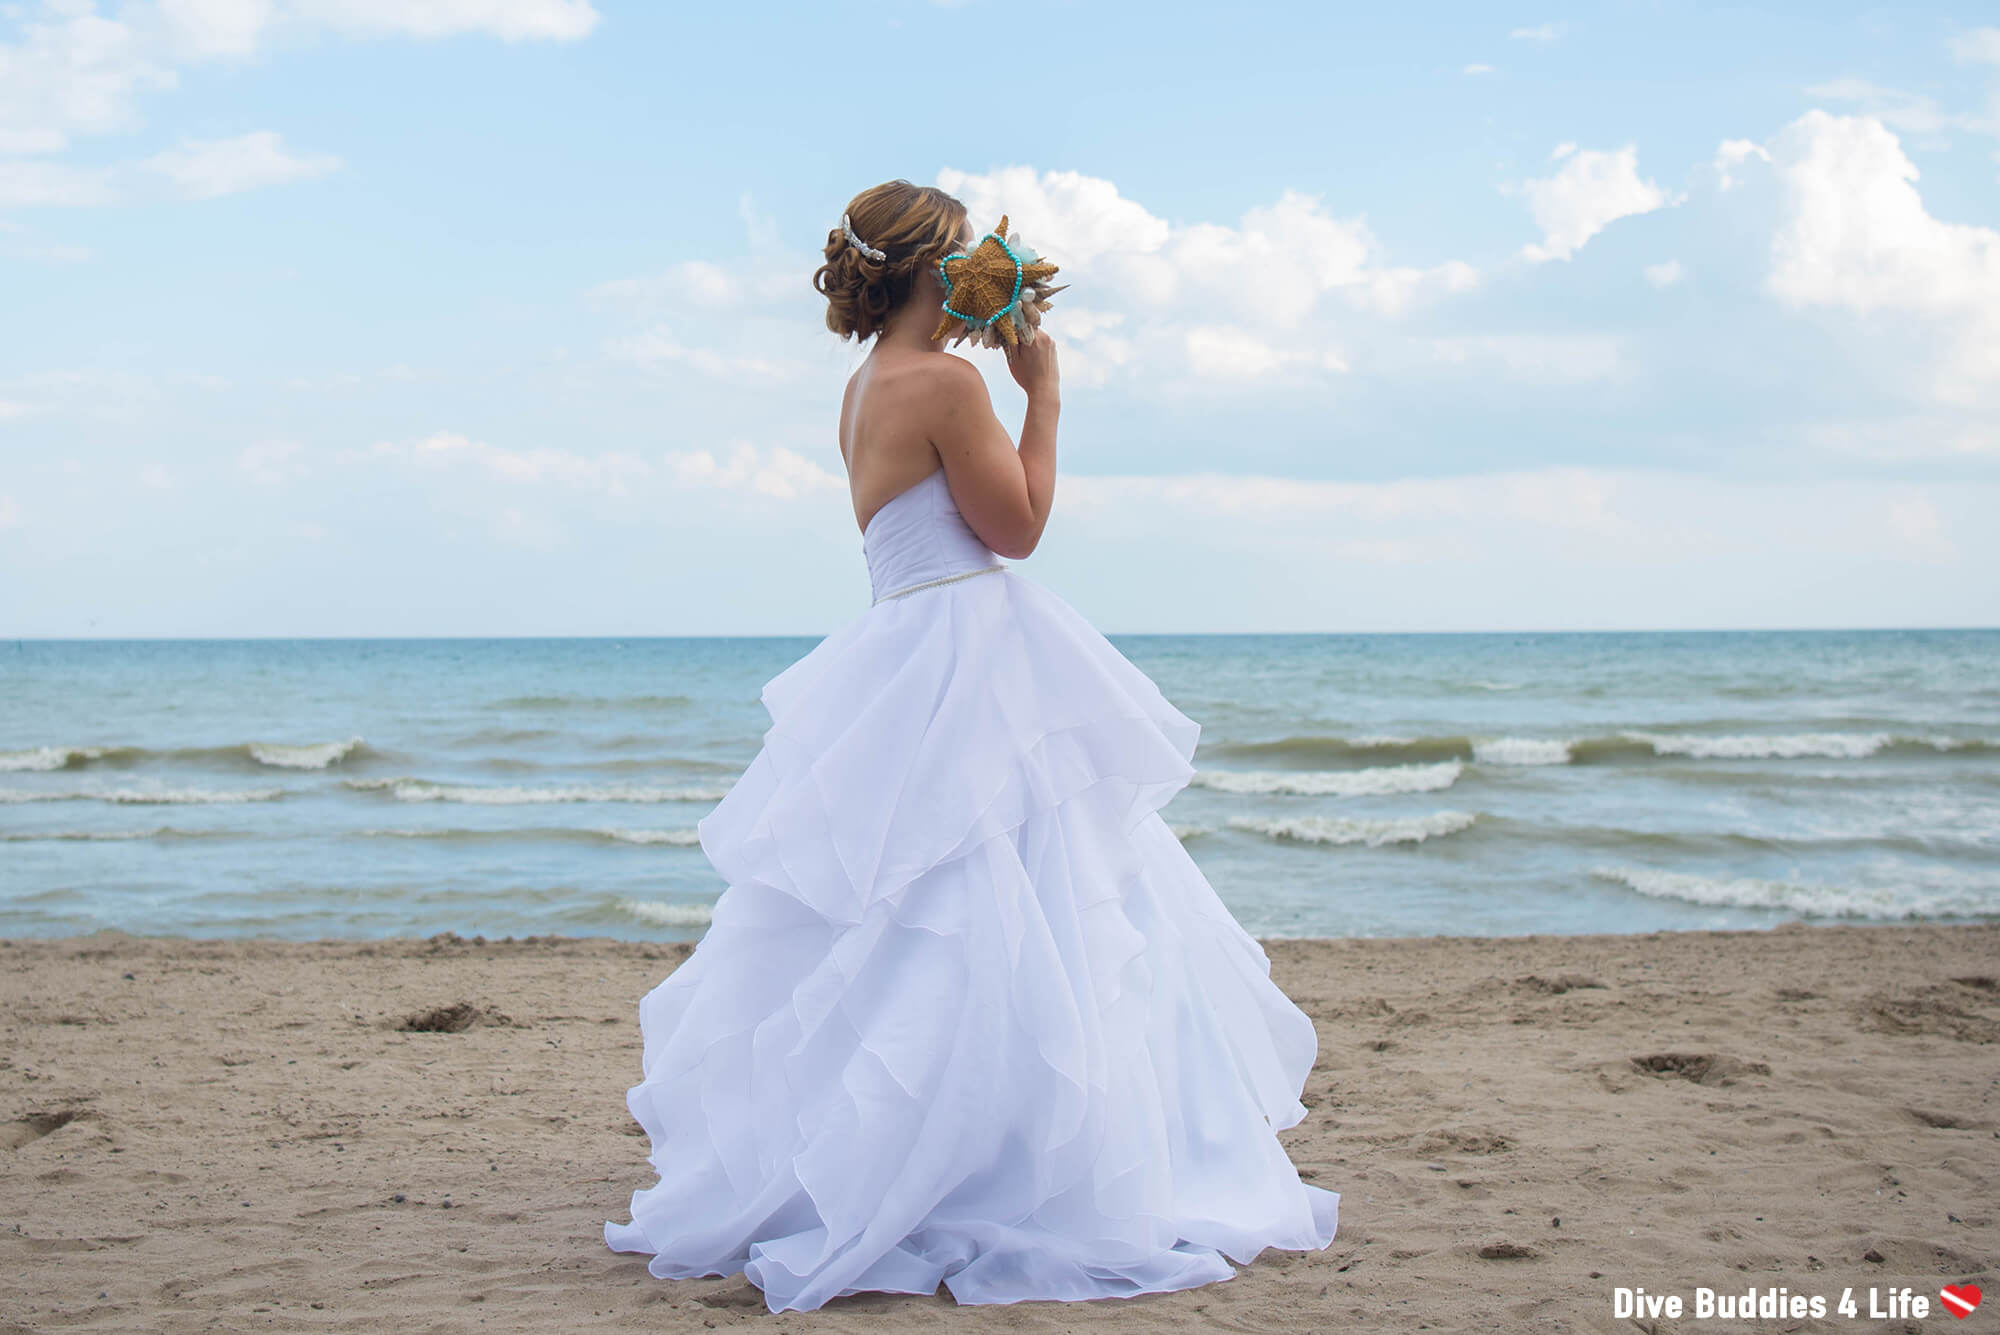 Scuba Ali On The Beach With Her Wedding Bouquet And Waves In The Background